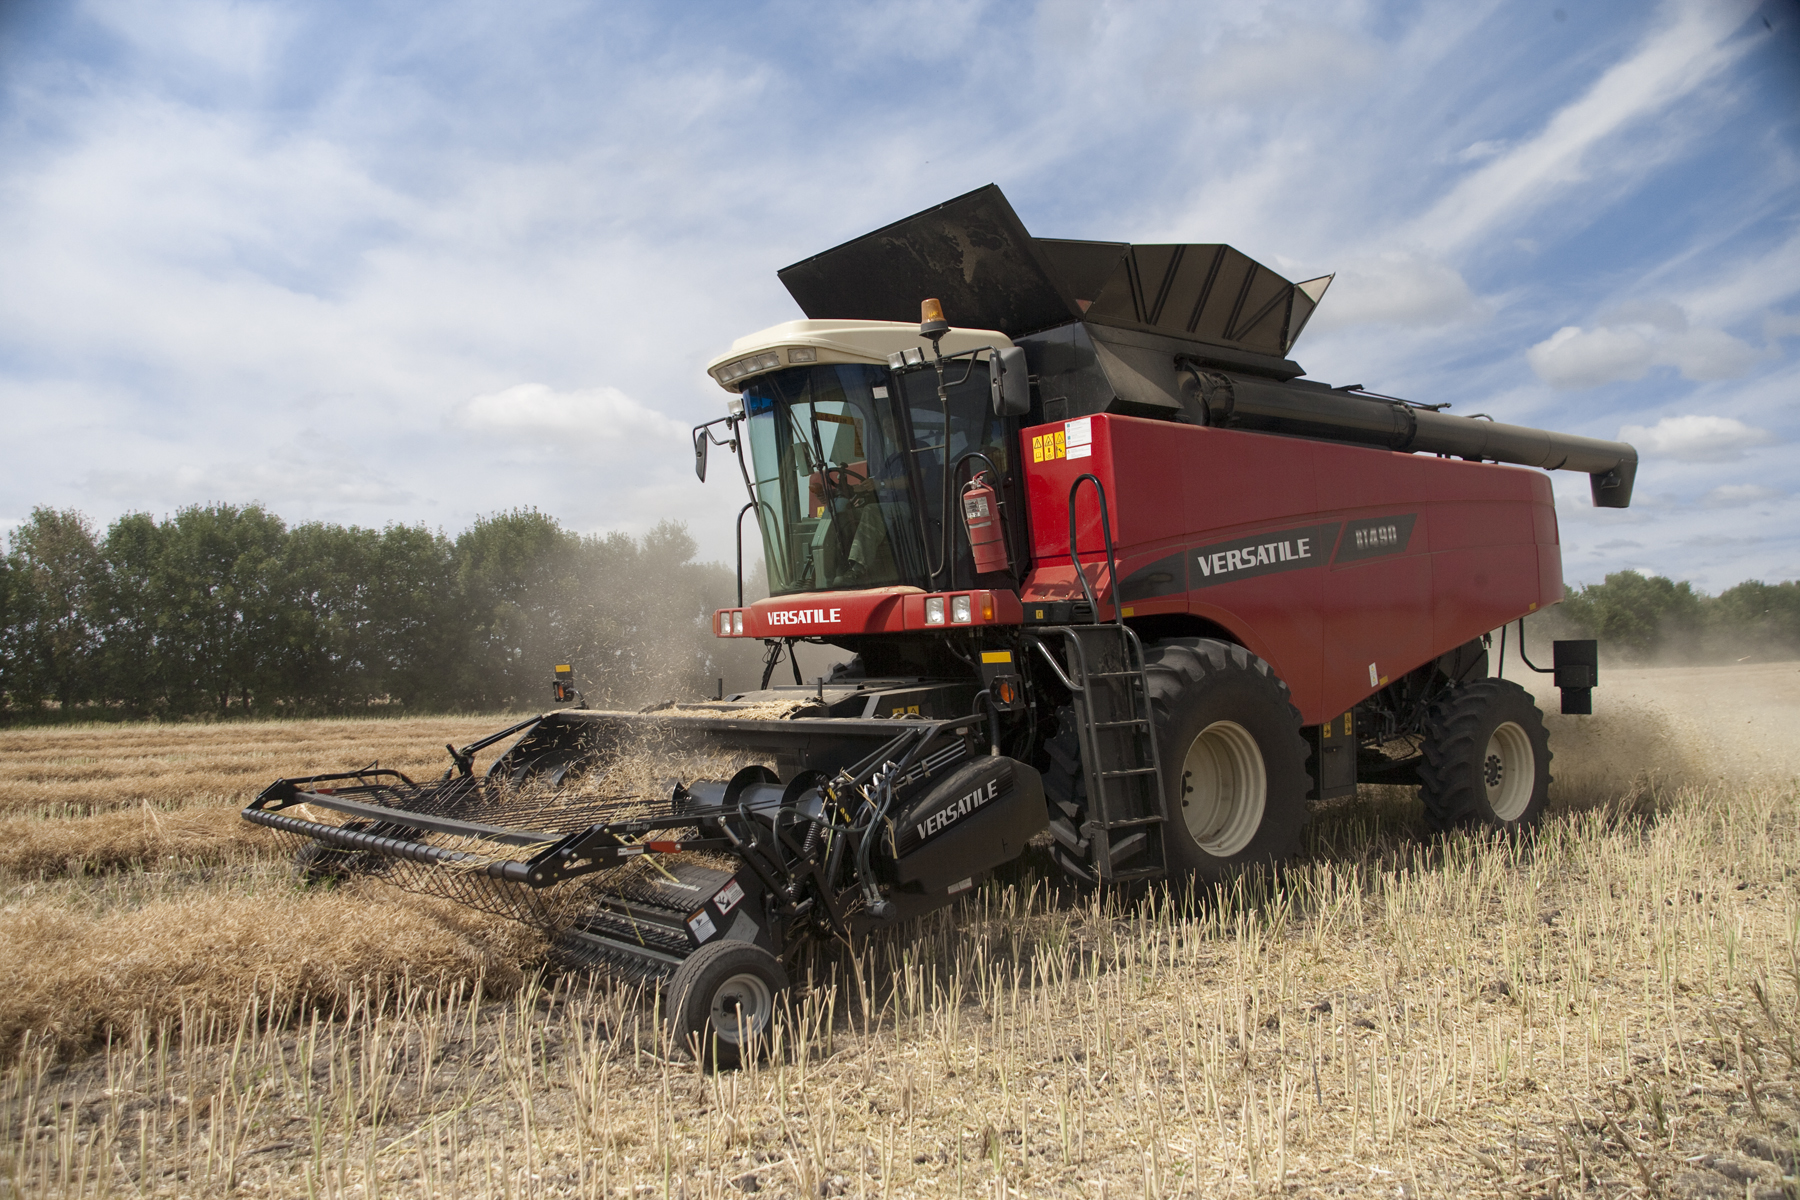 VERSATILE RT490 Combine for Canola harvesting